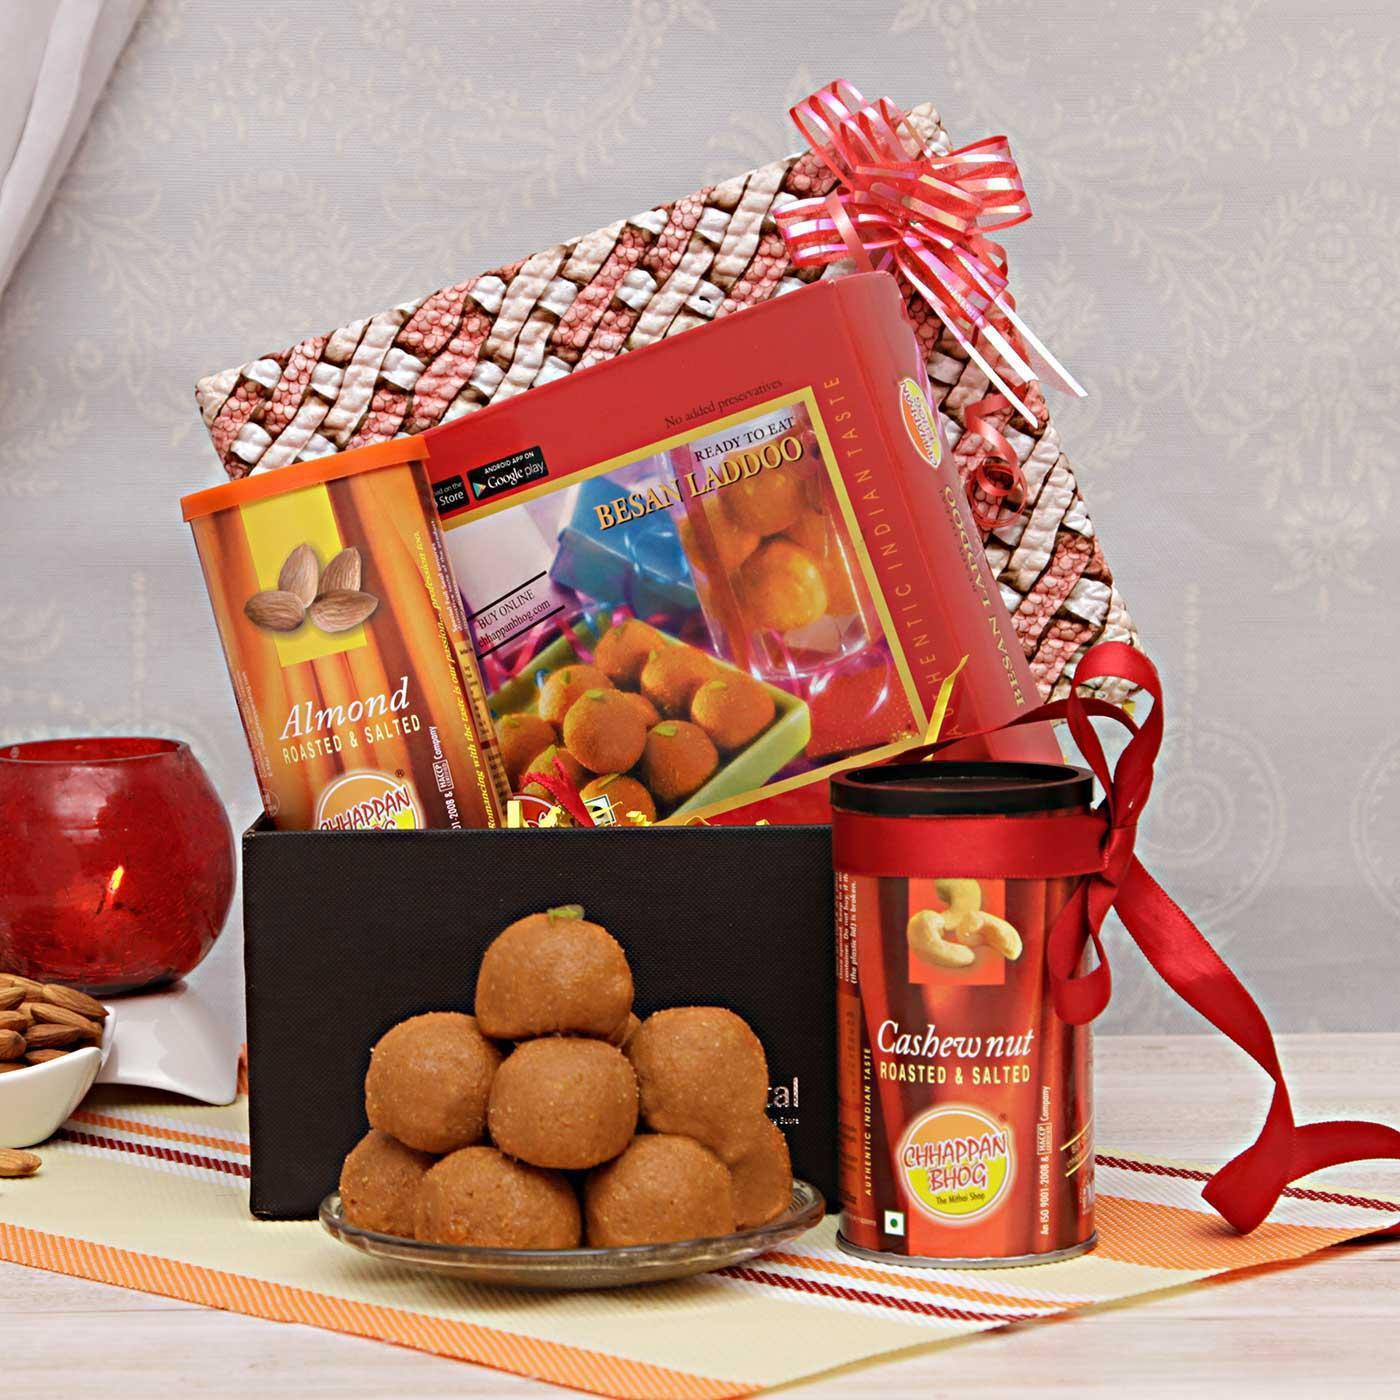 Besan Laddoos with Cashews and Almonds in a Gift Box